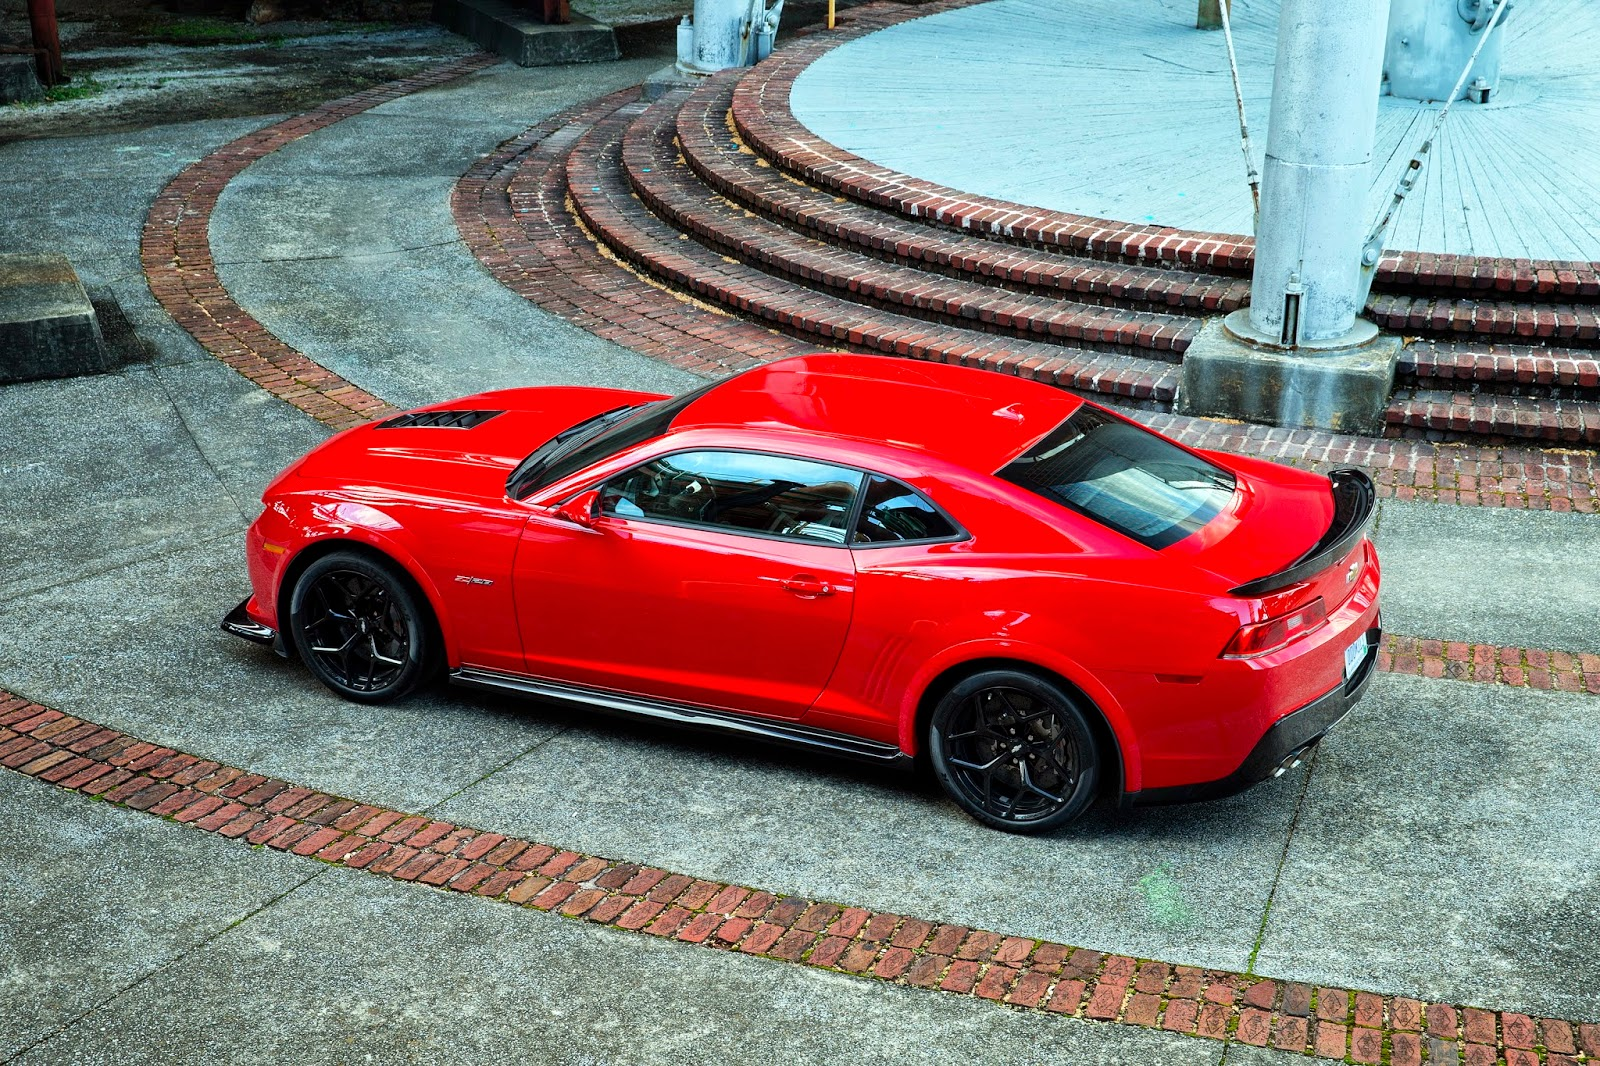 Motor Trend's 2014 Best Driver's Car is Chevrolet Camaro Z/28